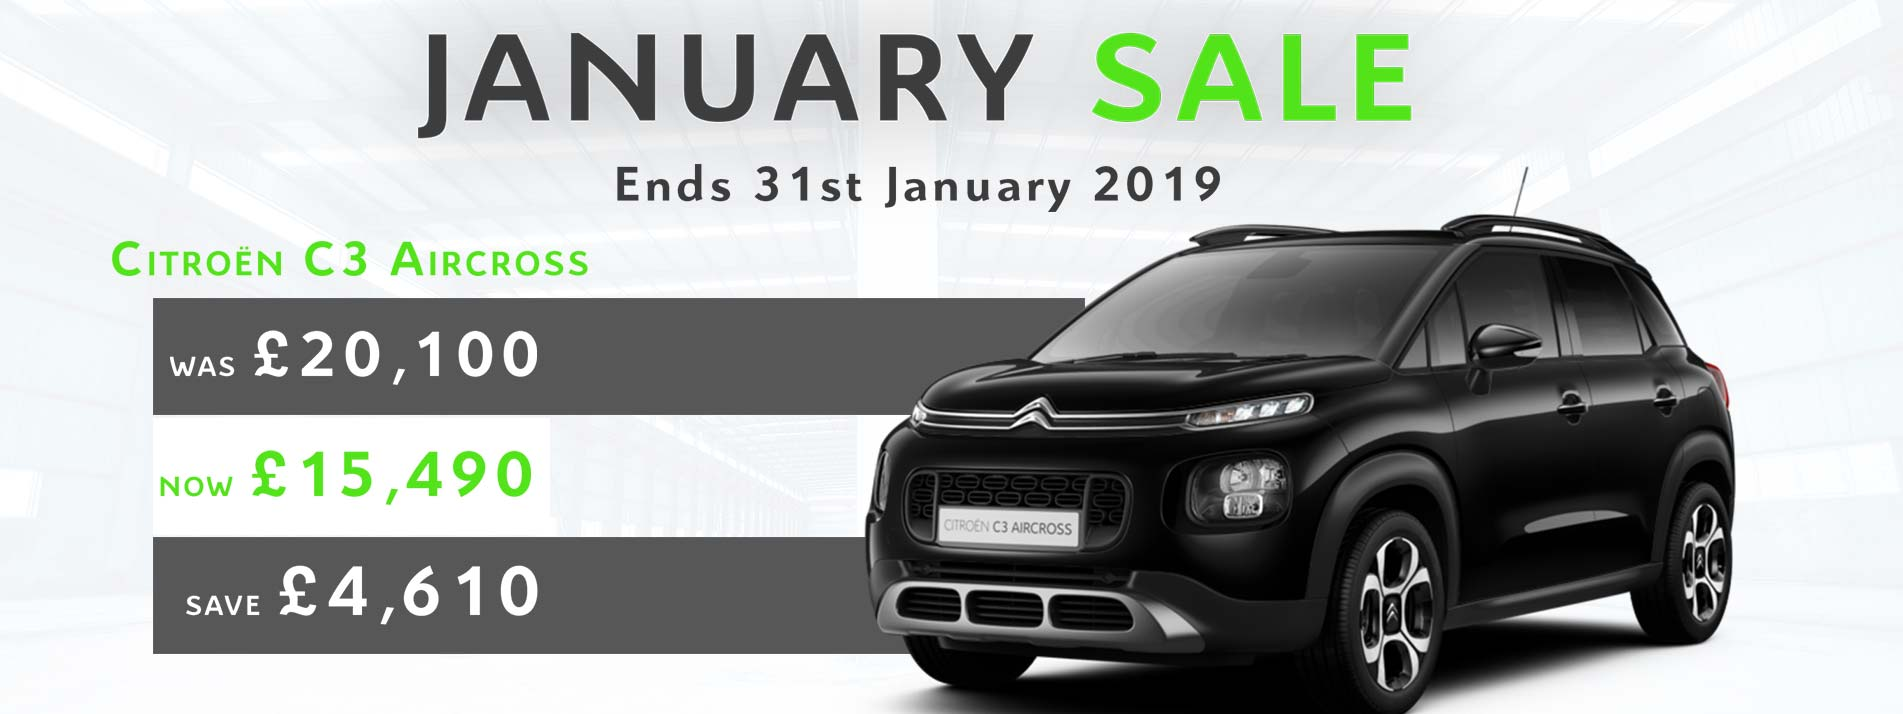 citroen-c3-aircross-flair-big-saving-during-january-car-sale-m-sli